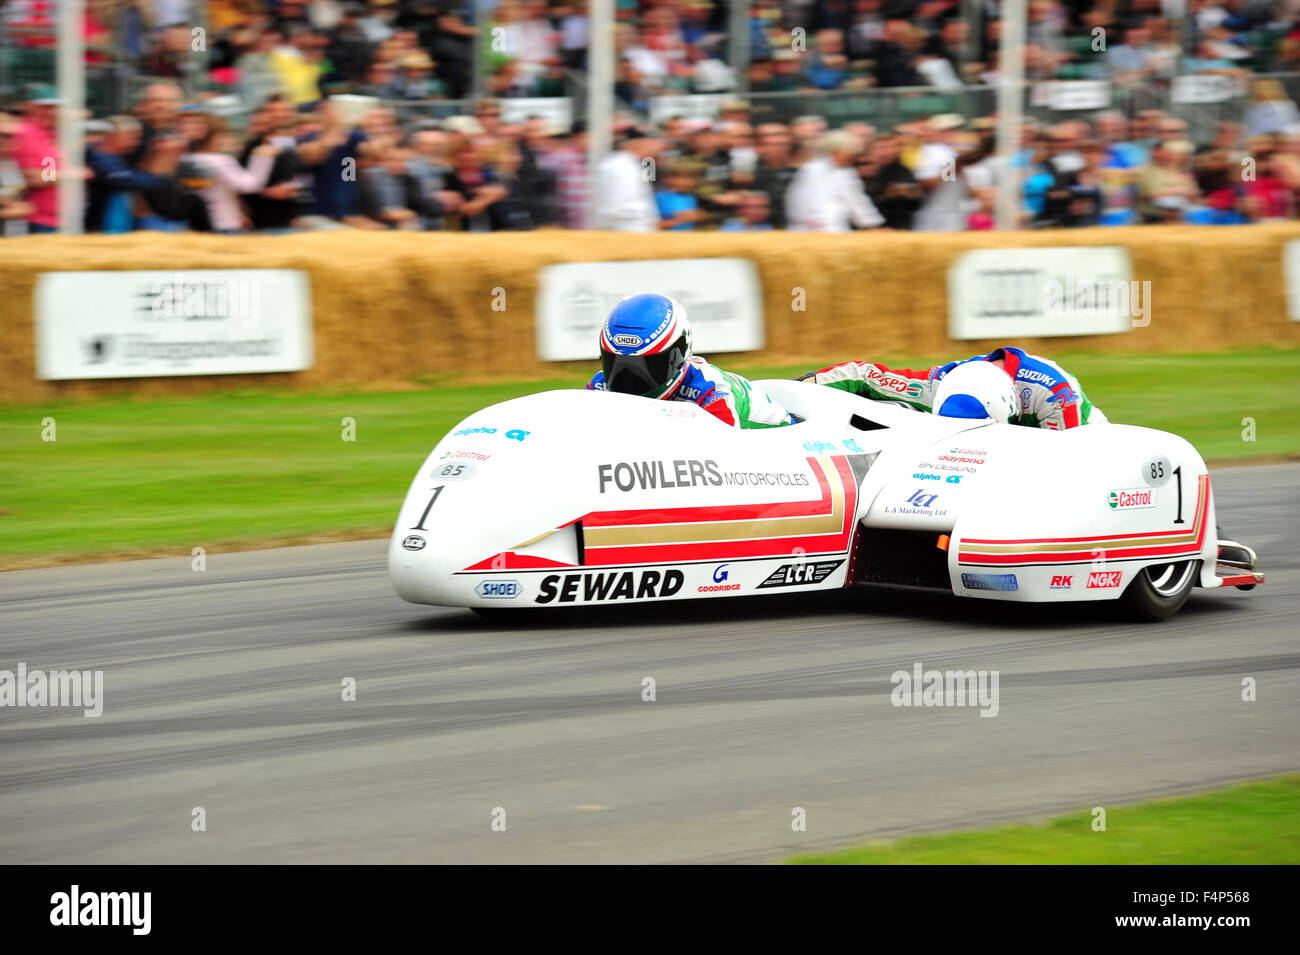 A LCR-Yamaha TZ500 sidecar at the Goodwood Festival of Speed in the UK. - Stock Image